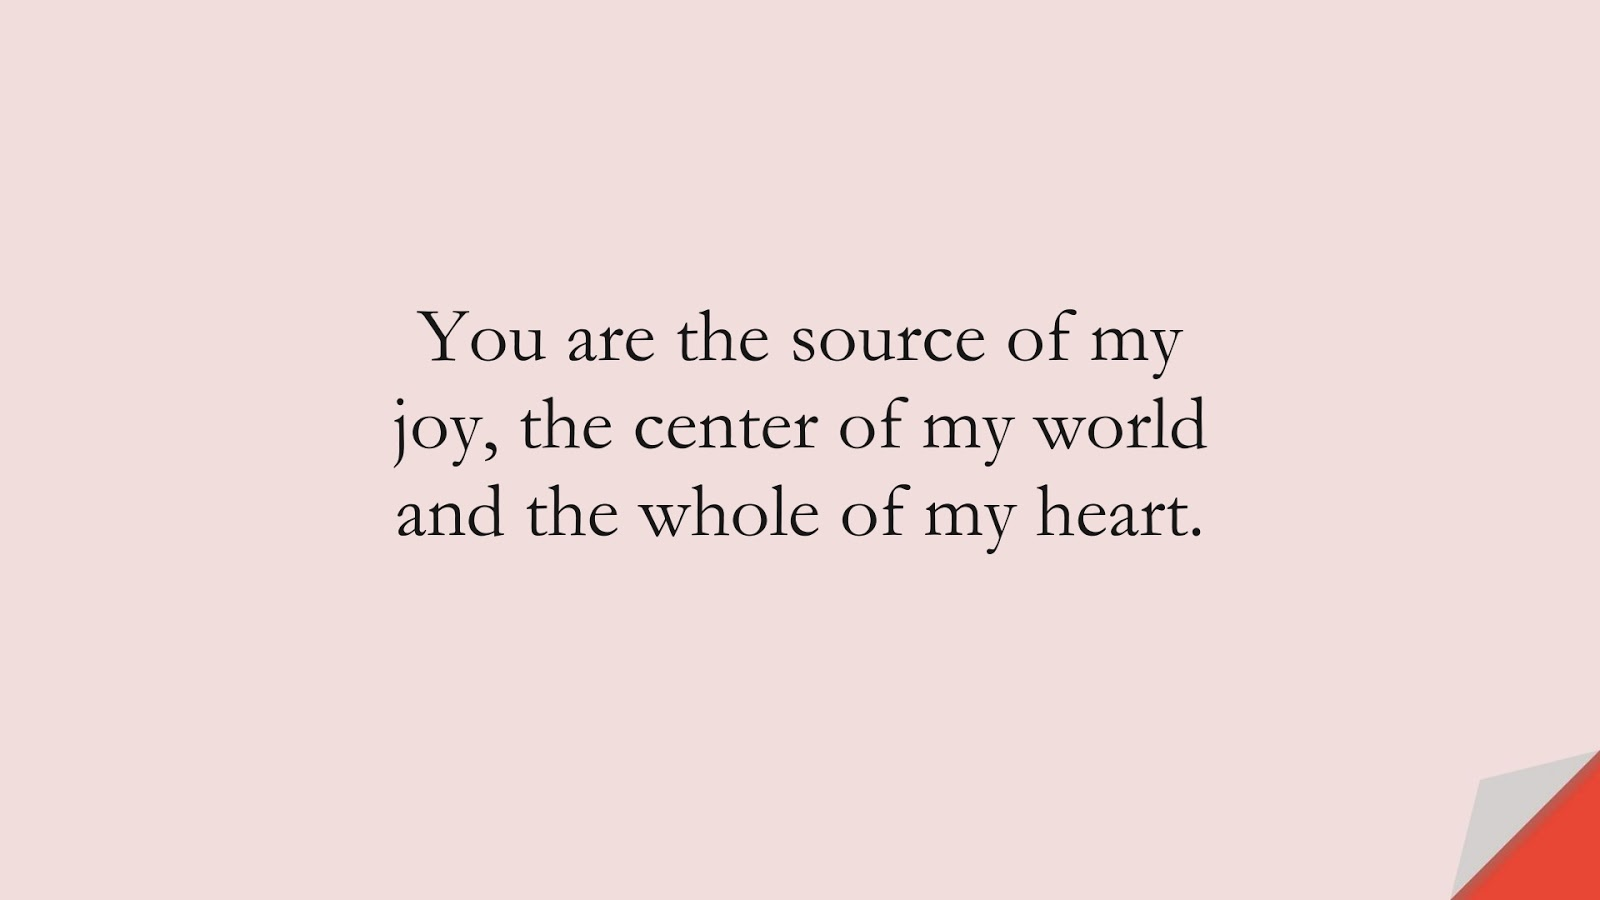 You are the source of my joy, the center of my world and the whole of my heart.FALSE